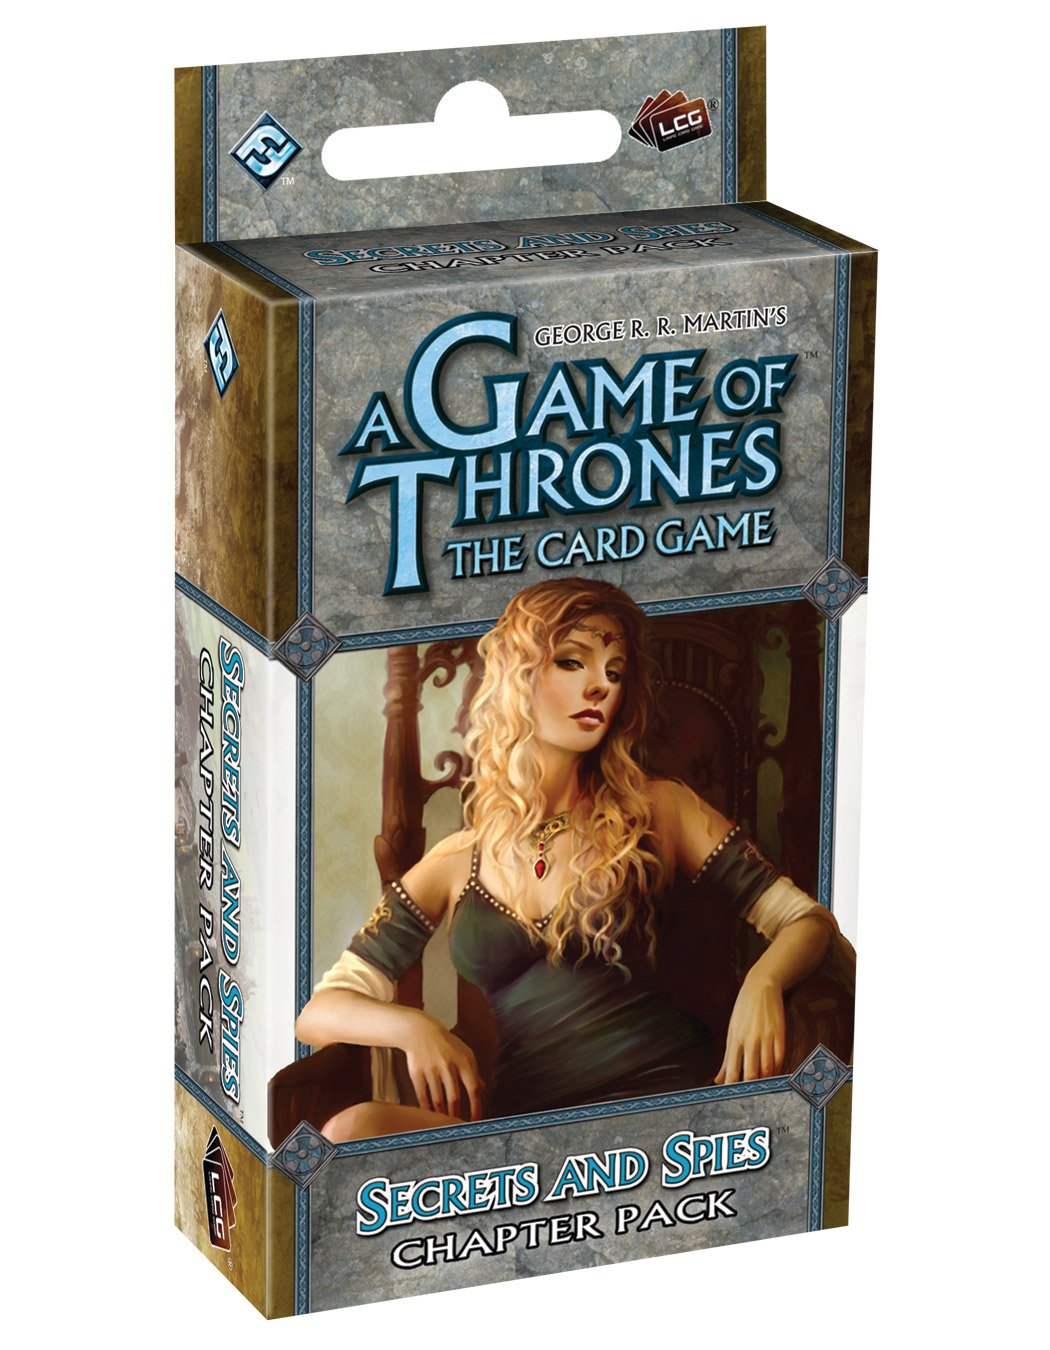 A Game of Thrones Secrets and Spies Chapter Pack Revised